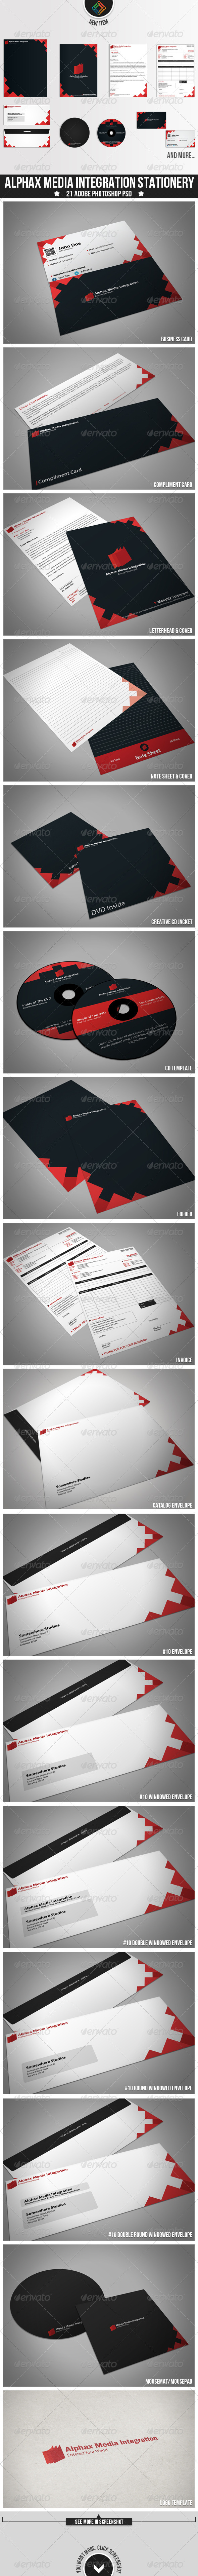 Alphax Media Integration Stationery - Stationery Print Templates